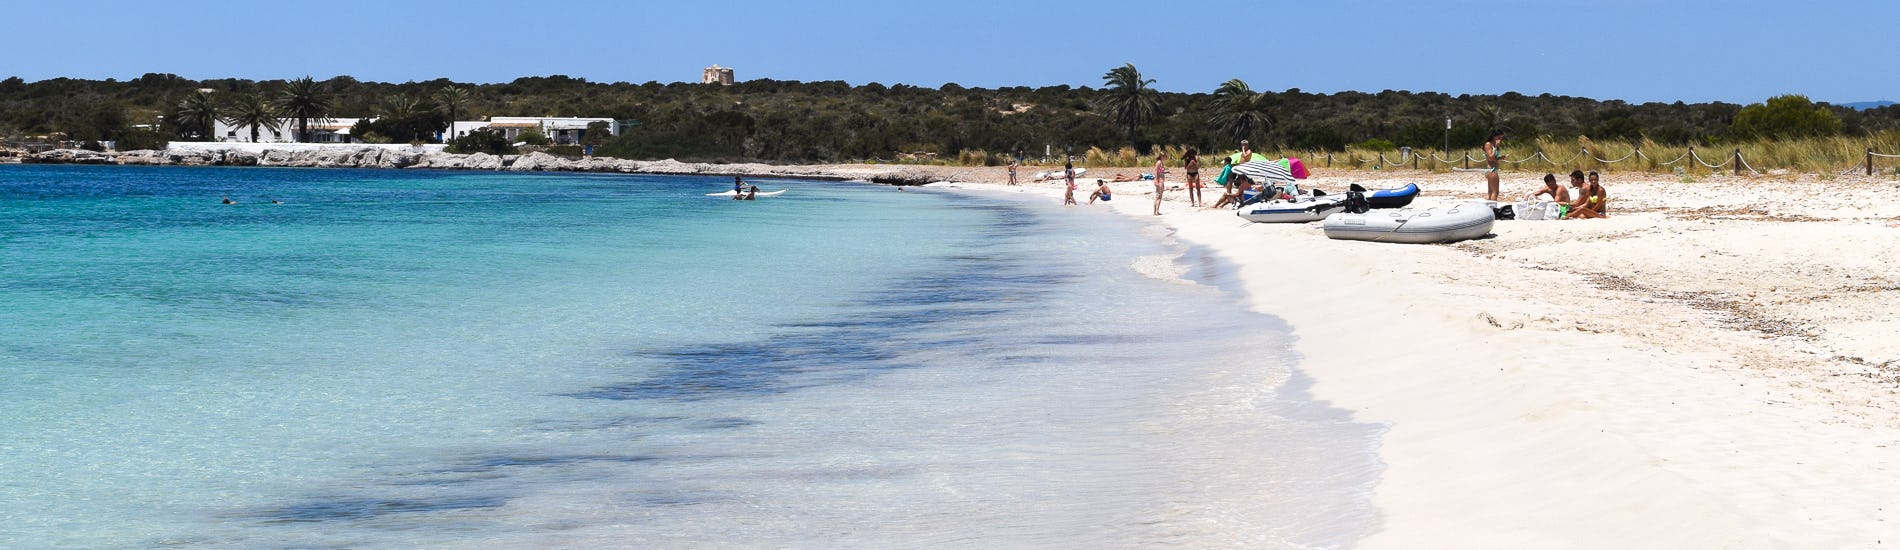 Playa de Espalmador Formentera Pictures, videos & insider tips